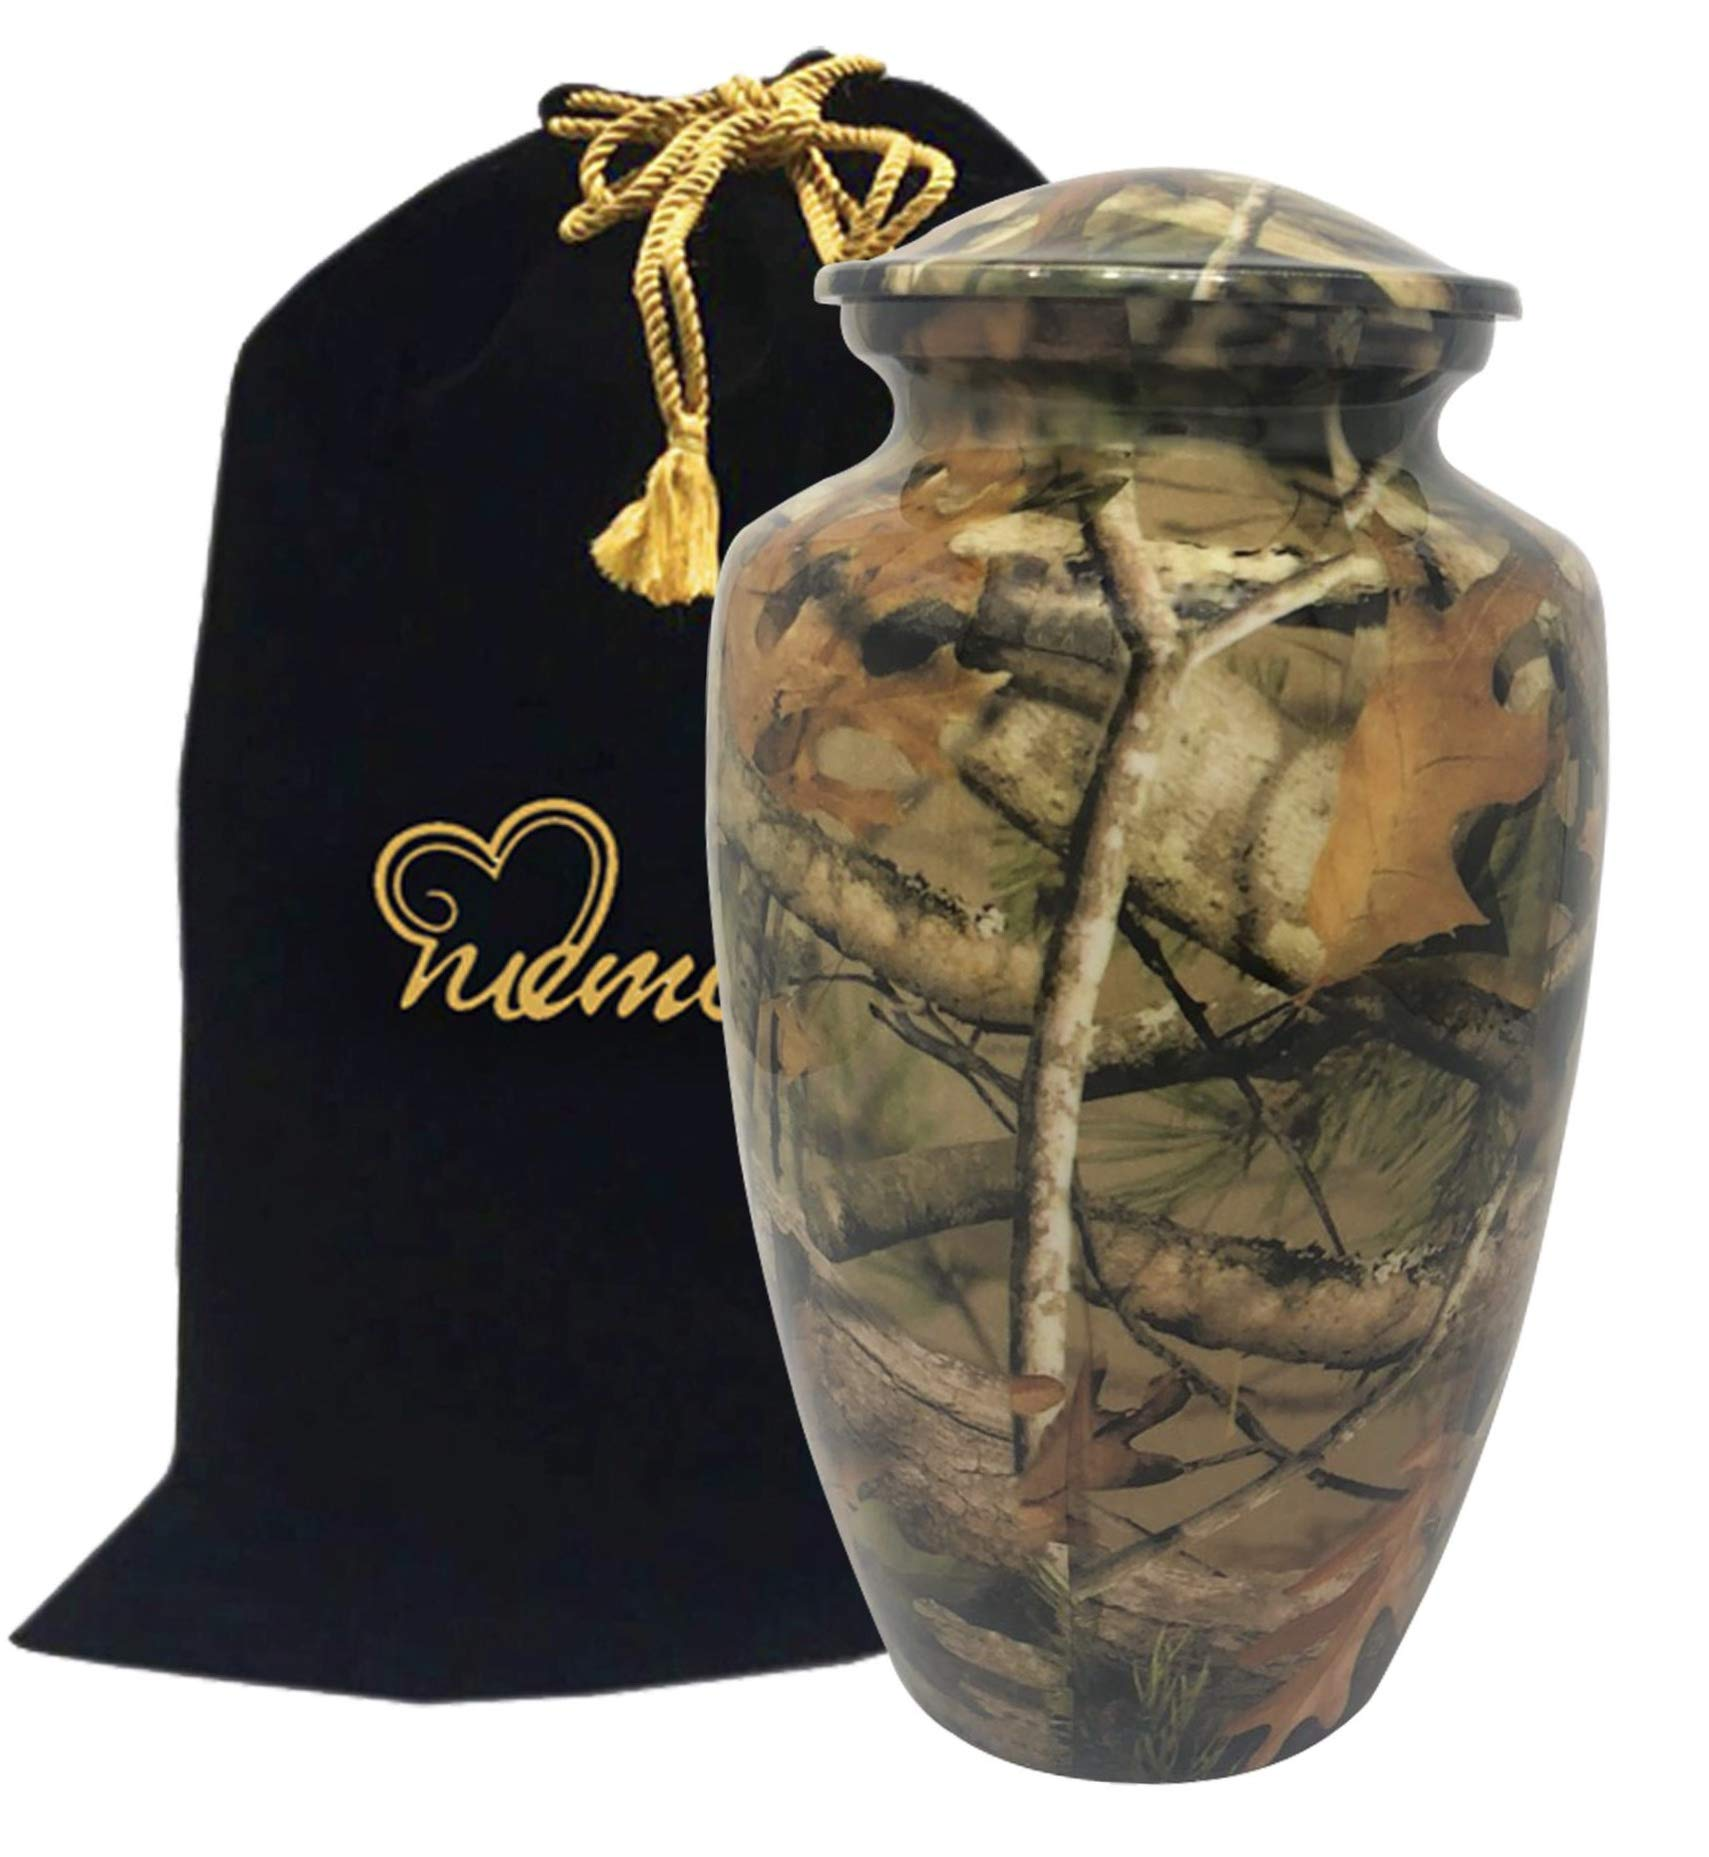 Woodstock Camouflage Urn - Solid Metal Camouflage Urn - Affordable Camouflage Urn for Human Ashes (Large)